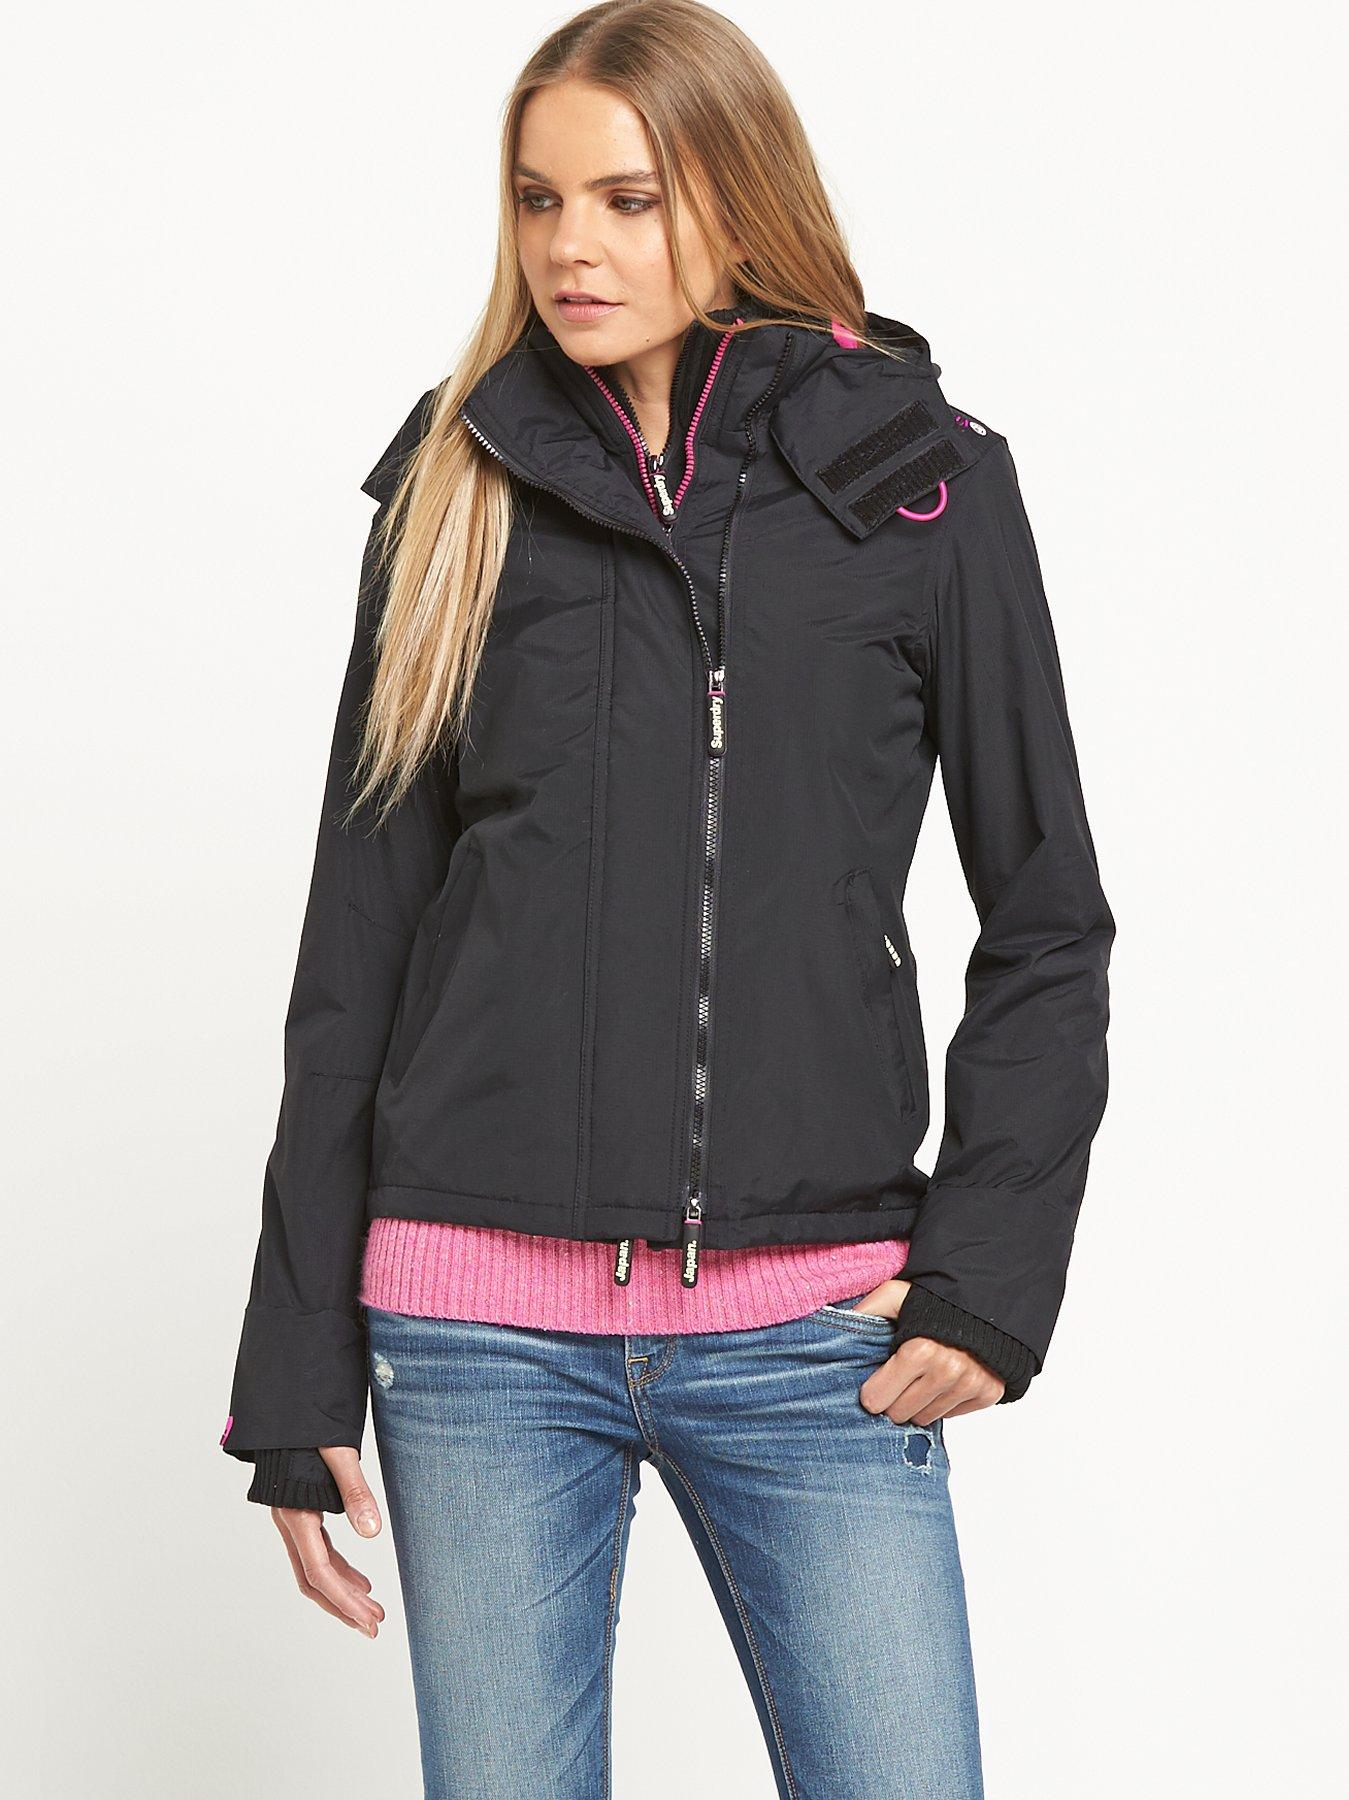 Superdry womens jackets